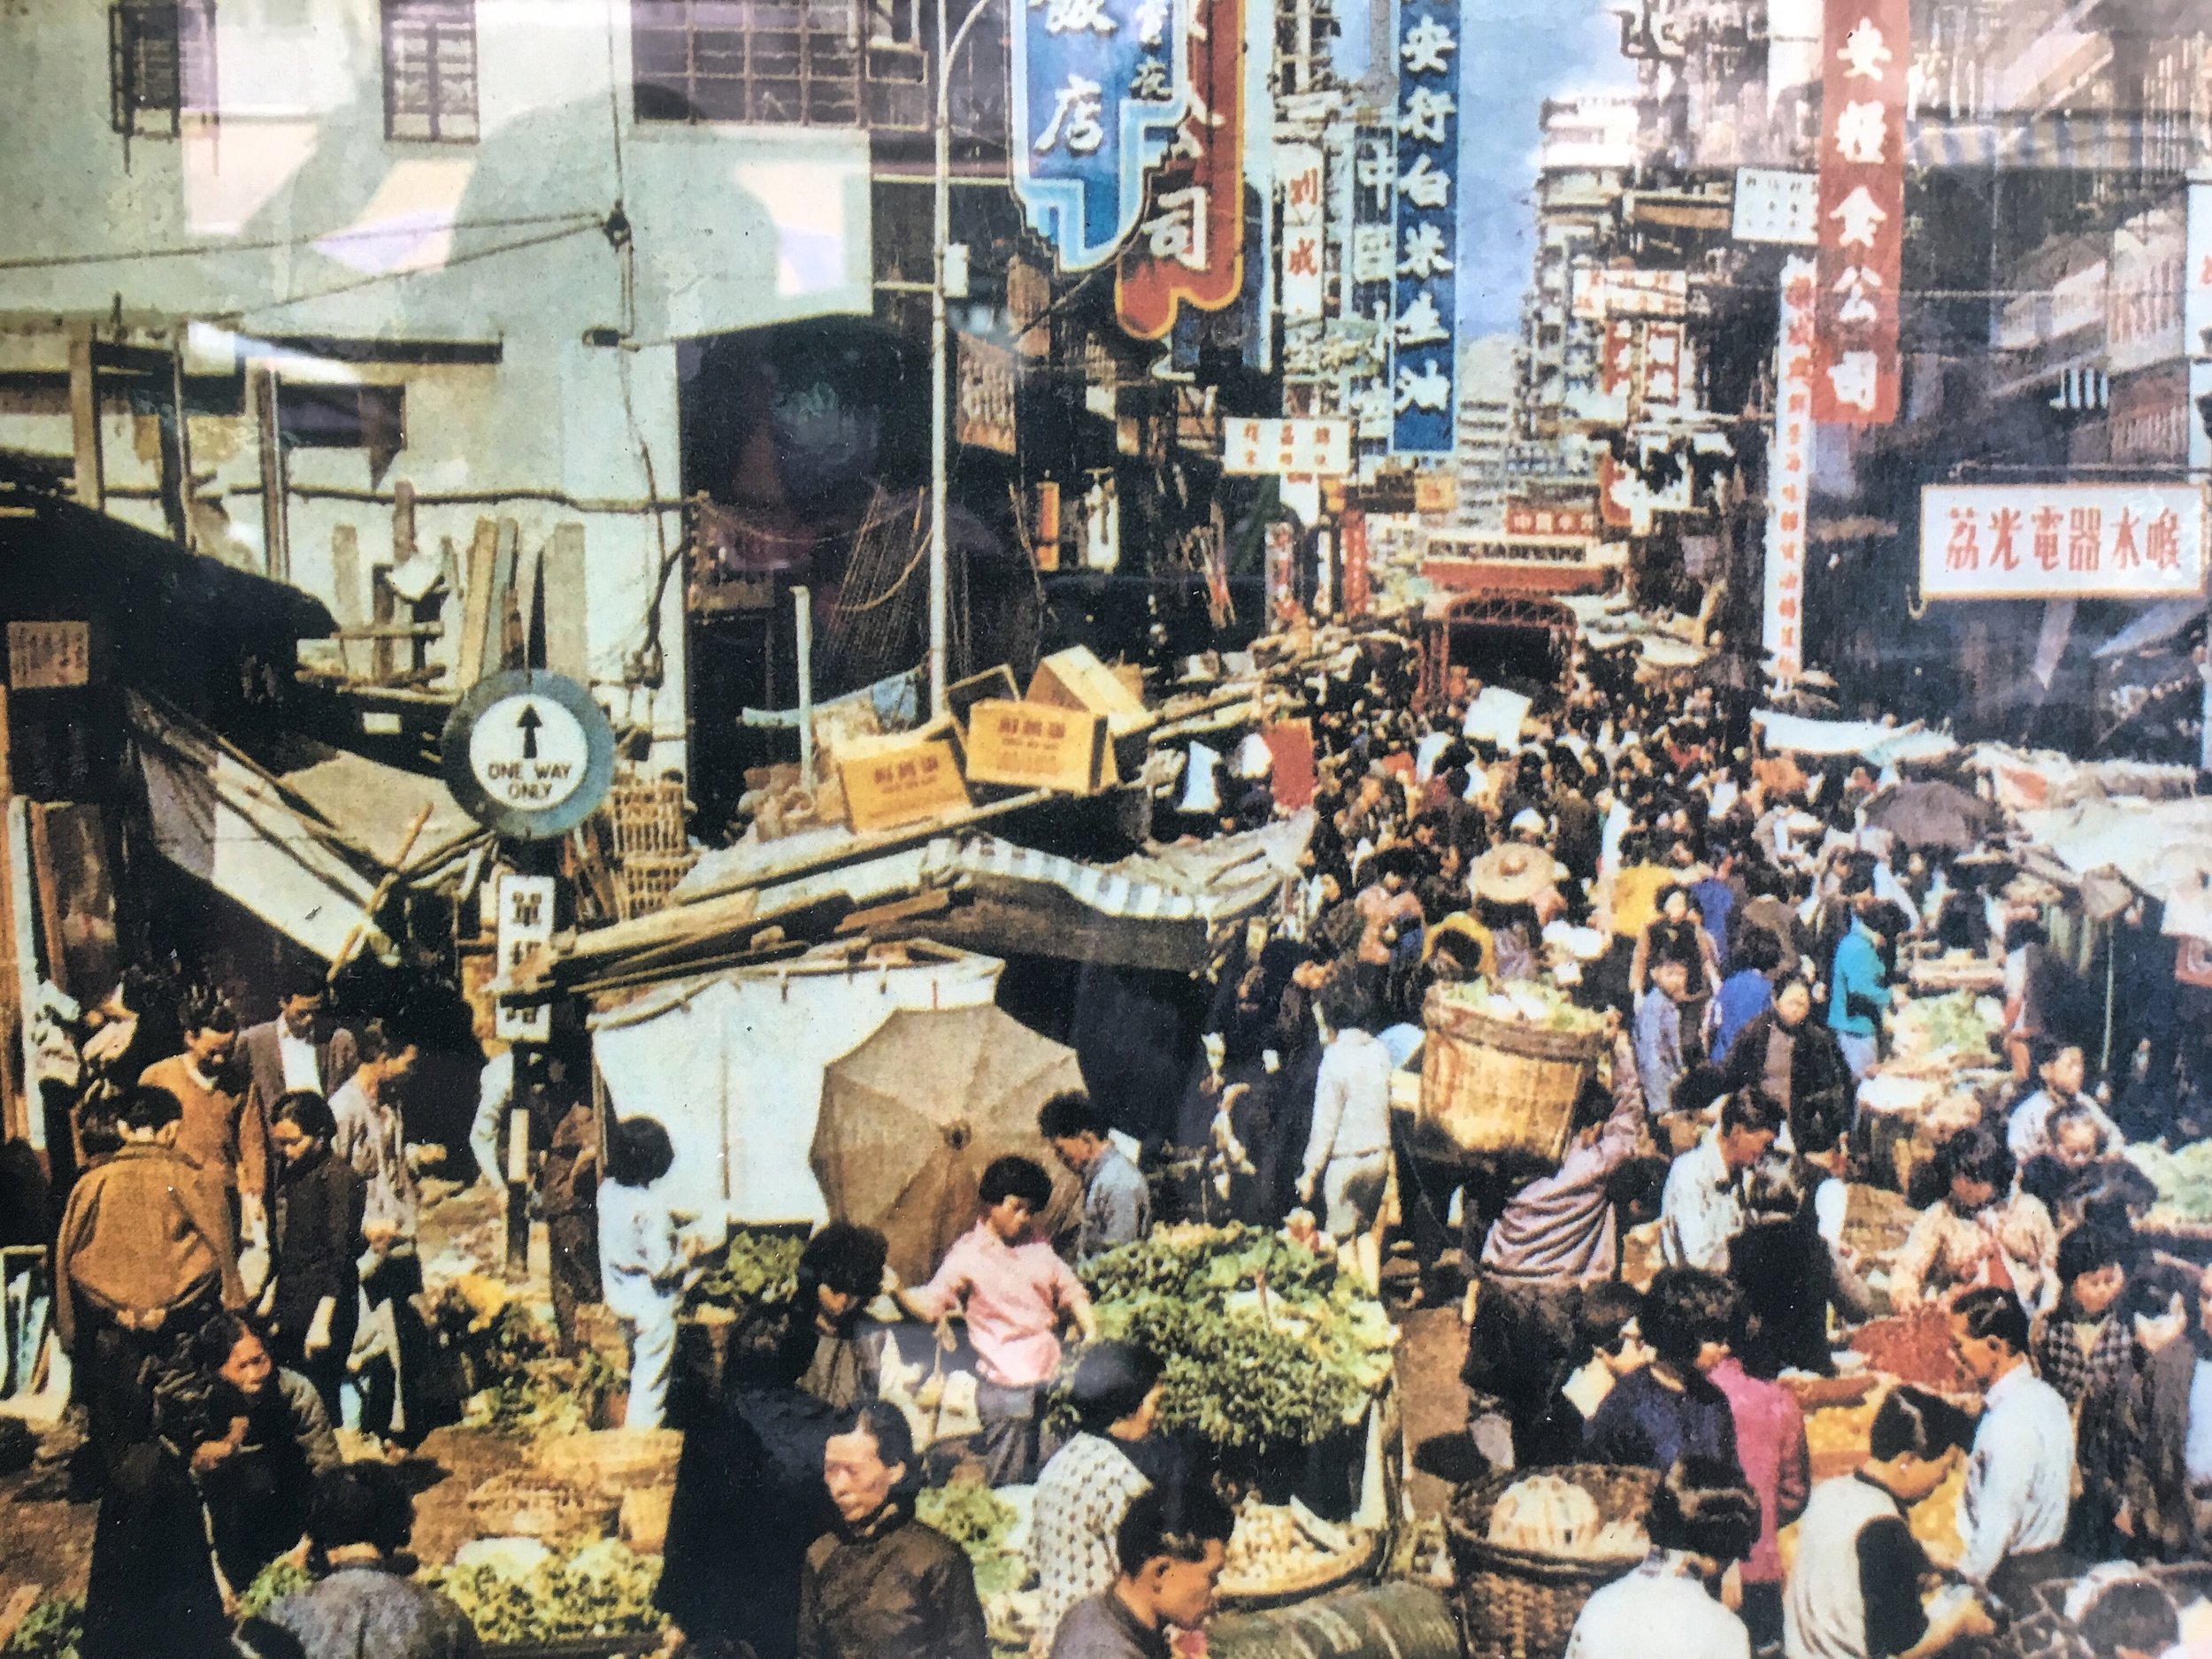 """A bit of raw Cantonese street culture circa 1950's. This street looks substantially the same today. A quintessential example of    """"messy urbanism""""    and a street photographer's wet dream."""